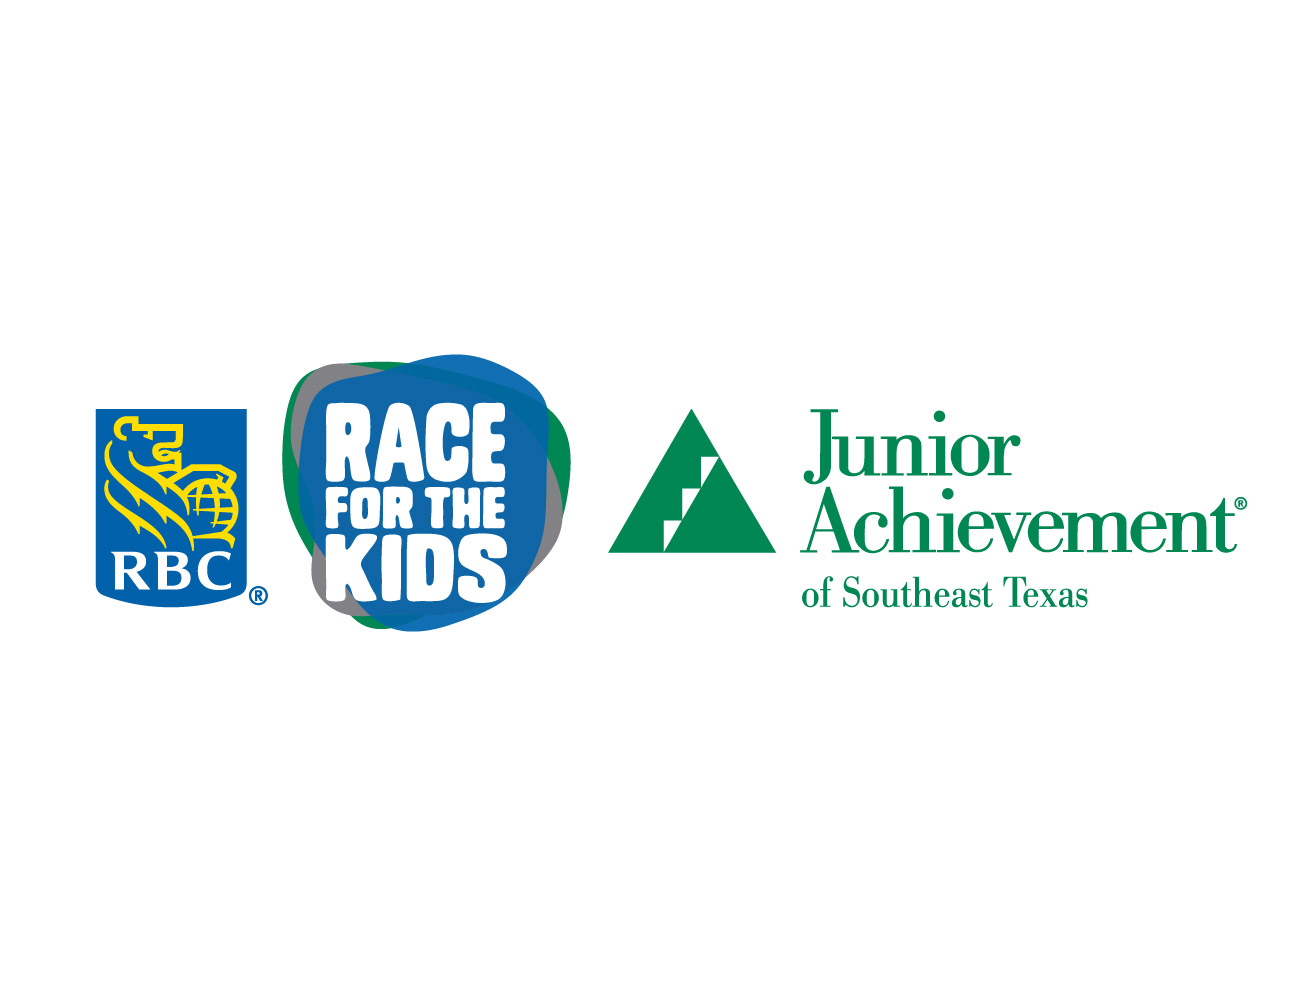 RBC Race for the Kids